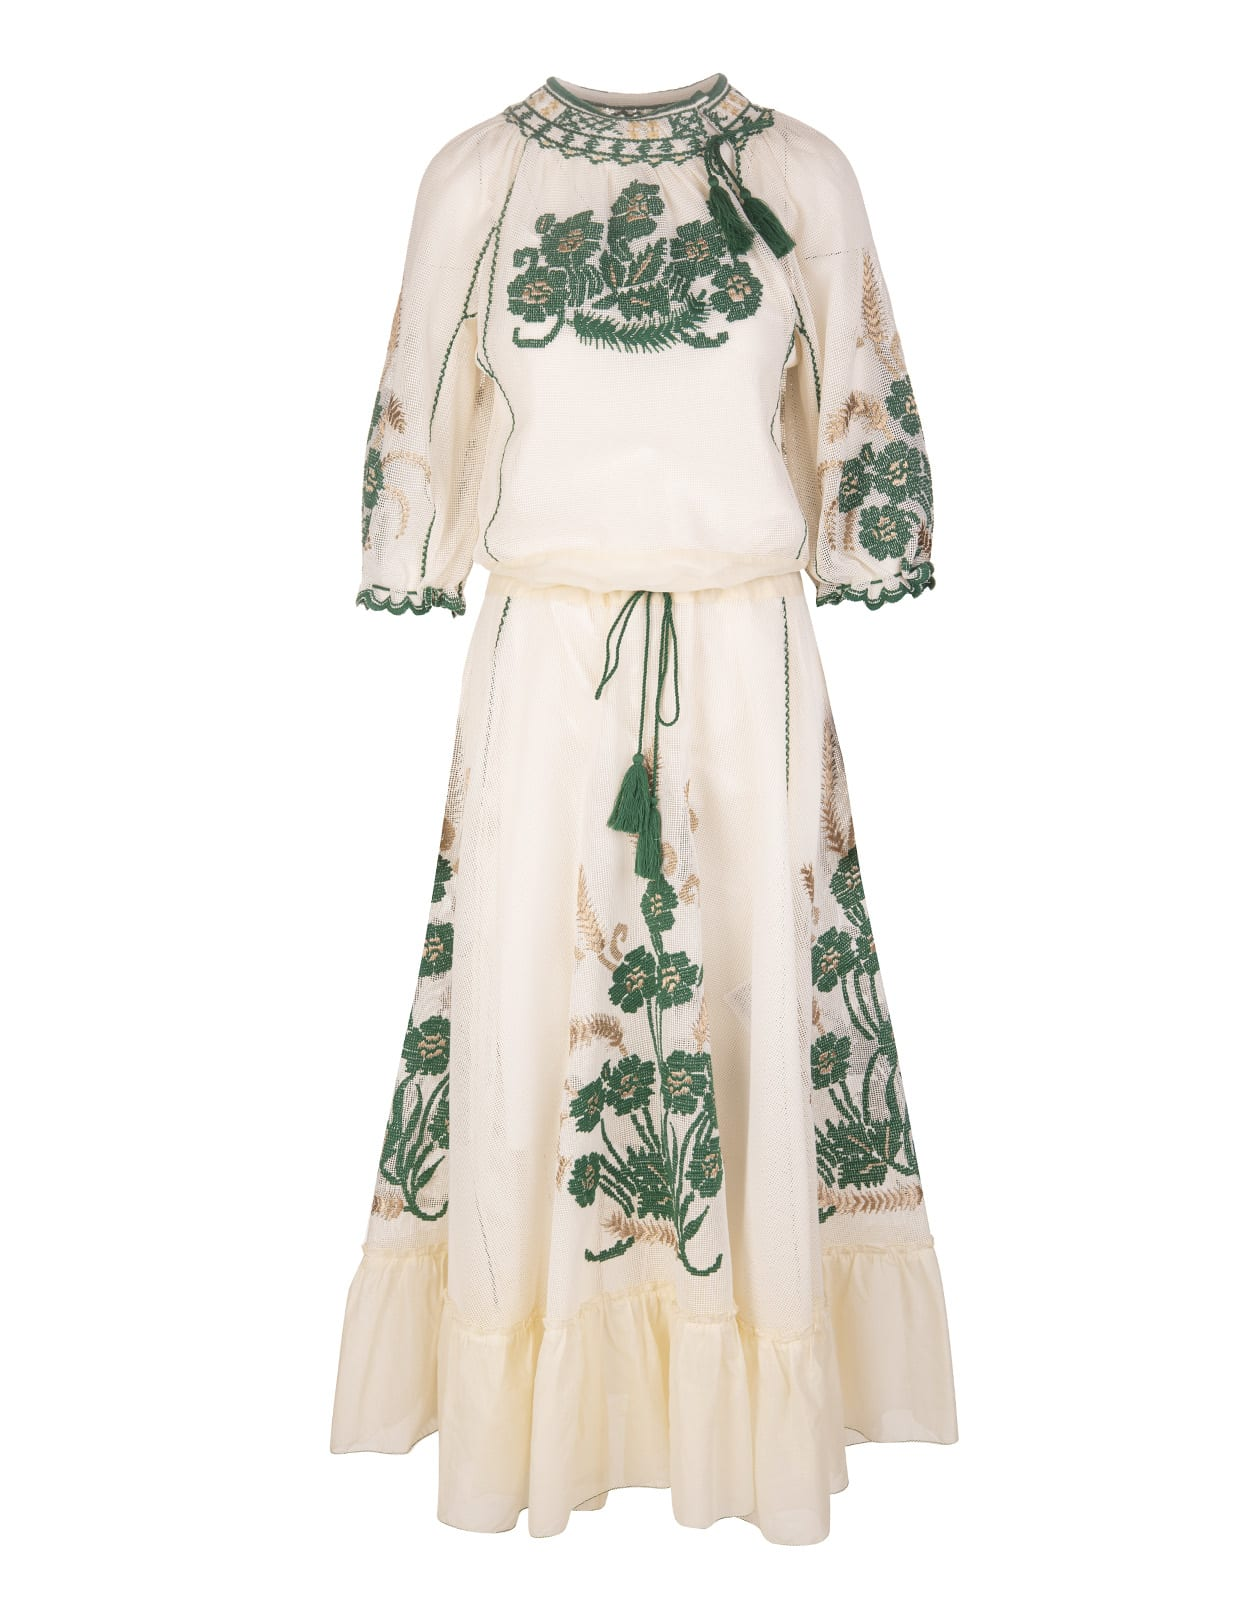 Buy Ivory/green/beige Tassel-trim Embroidered Dress online, shop RED Valentino with free shipping